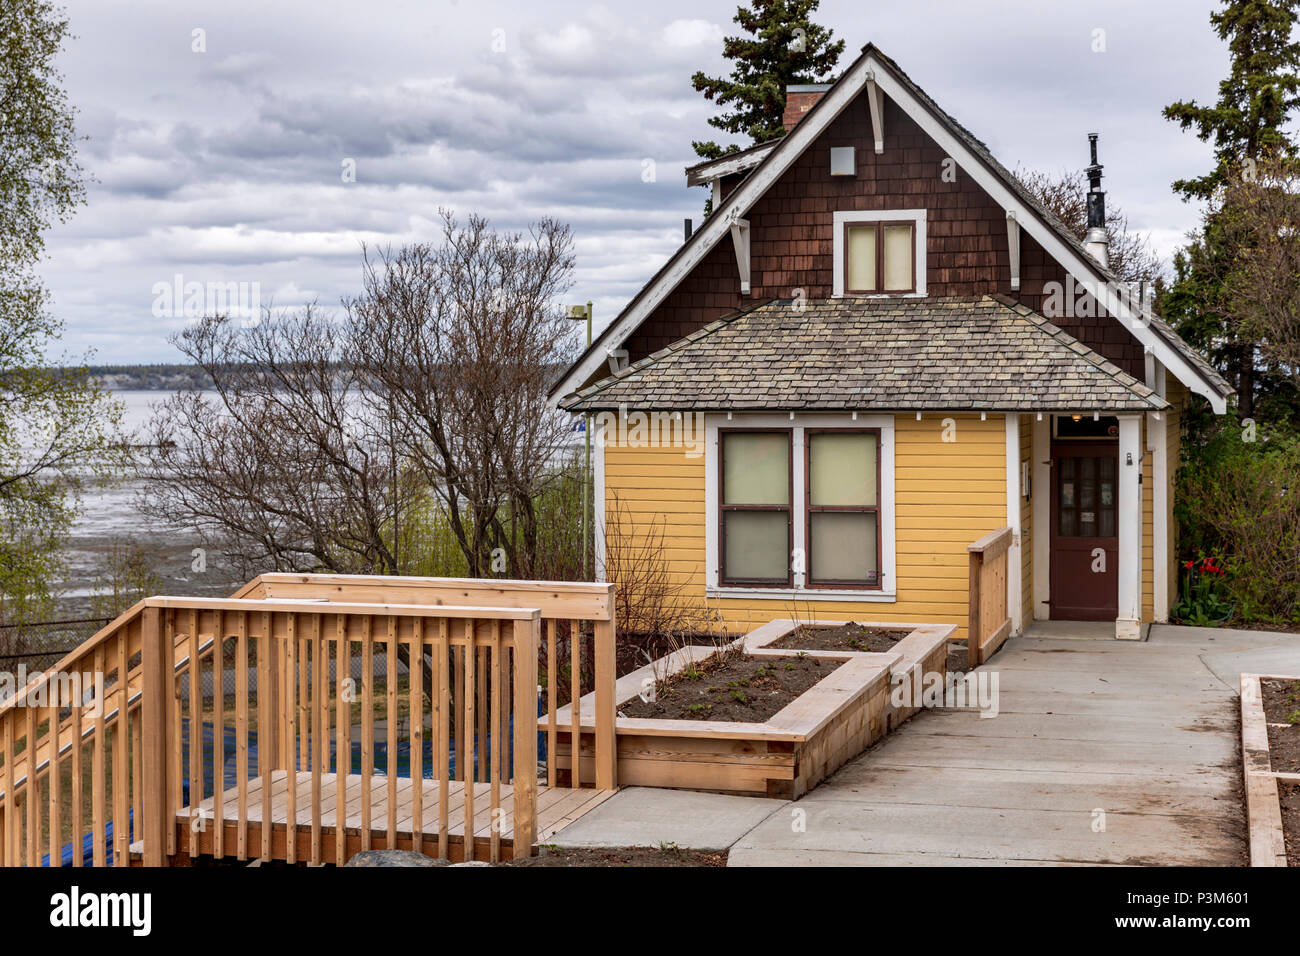 Anchorage museum stock photos anchorage museum stock - Exterior house painting anchorage ...